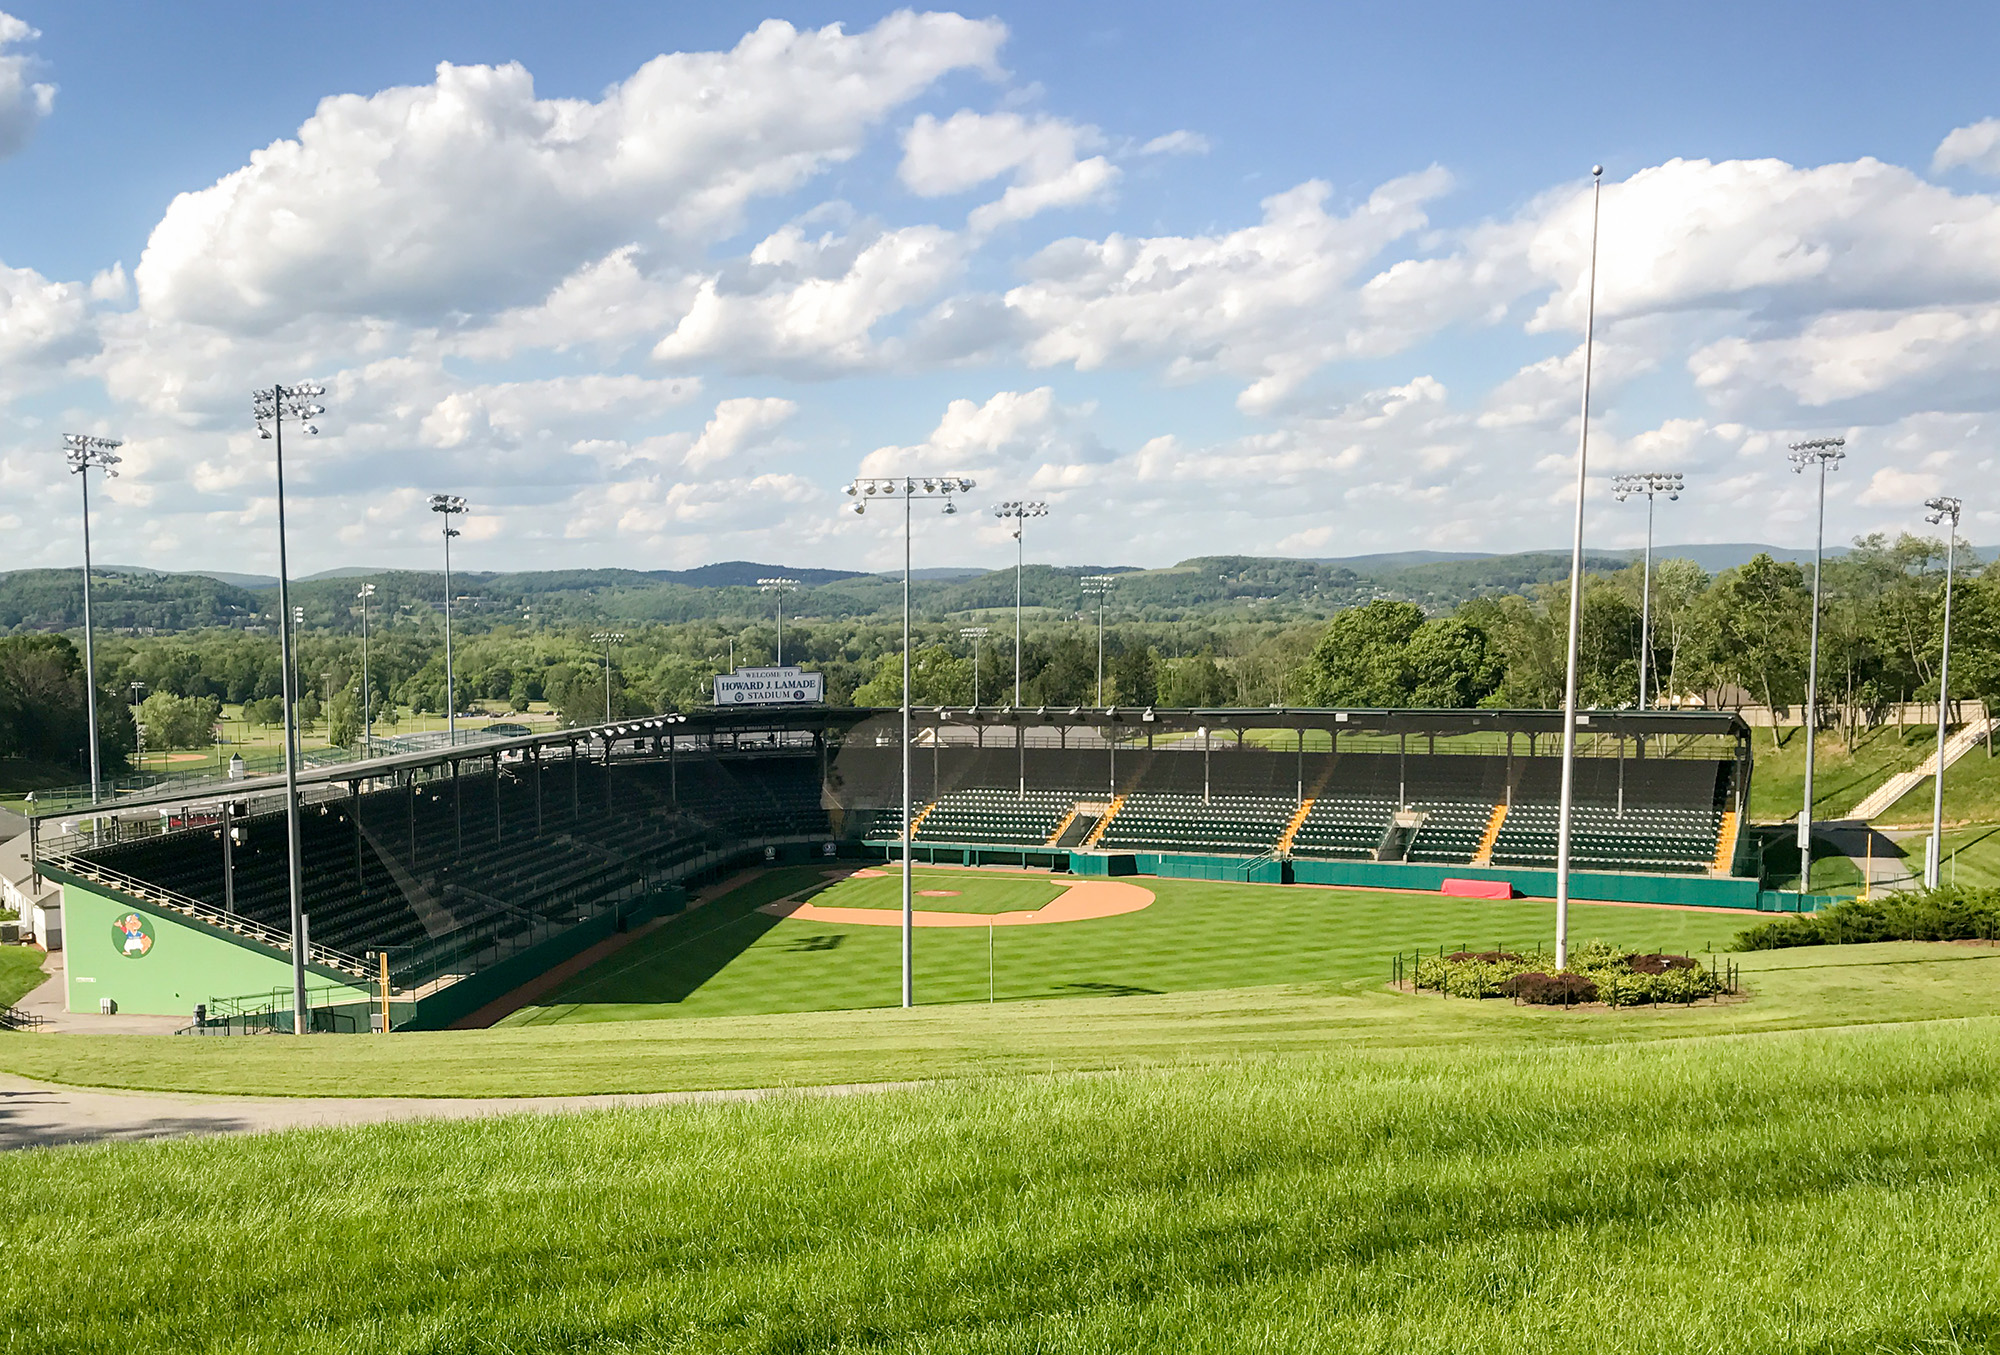 Williamsport, Pa. will host the 2017 Little League World Series, Aug. 17-27.